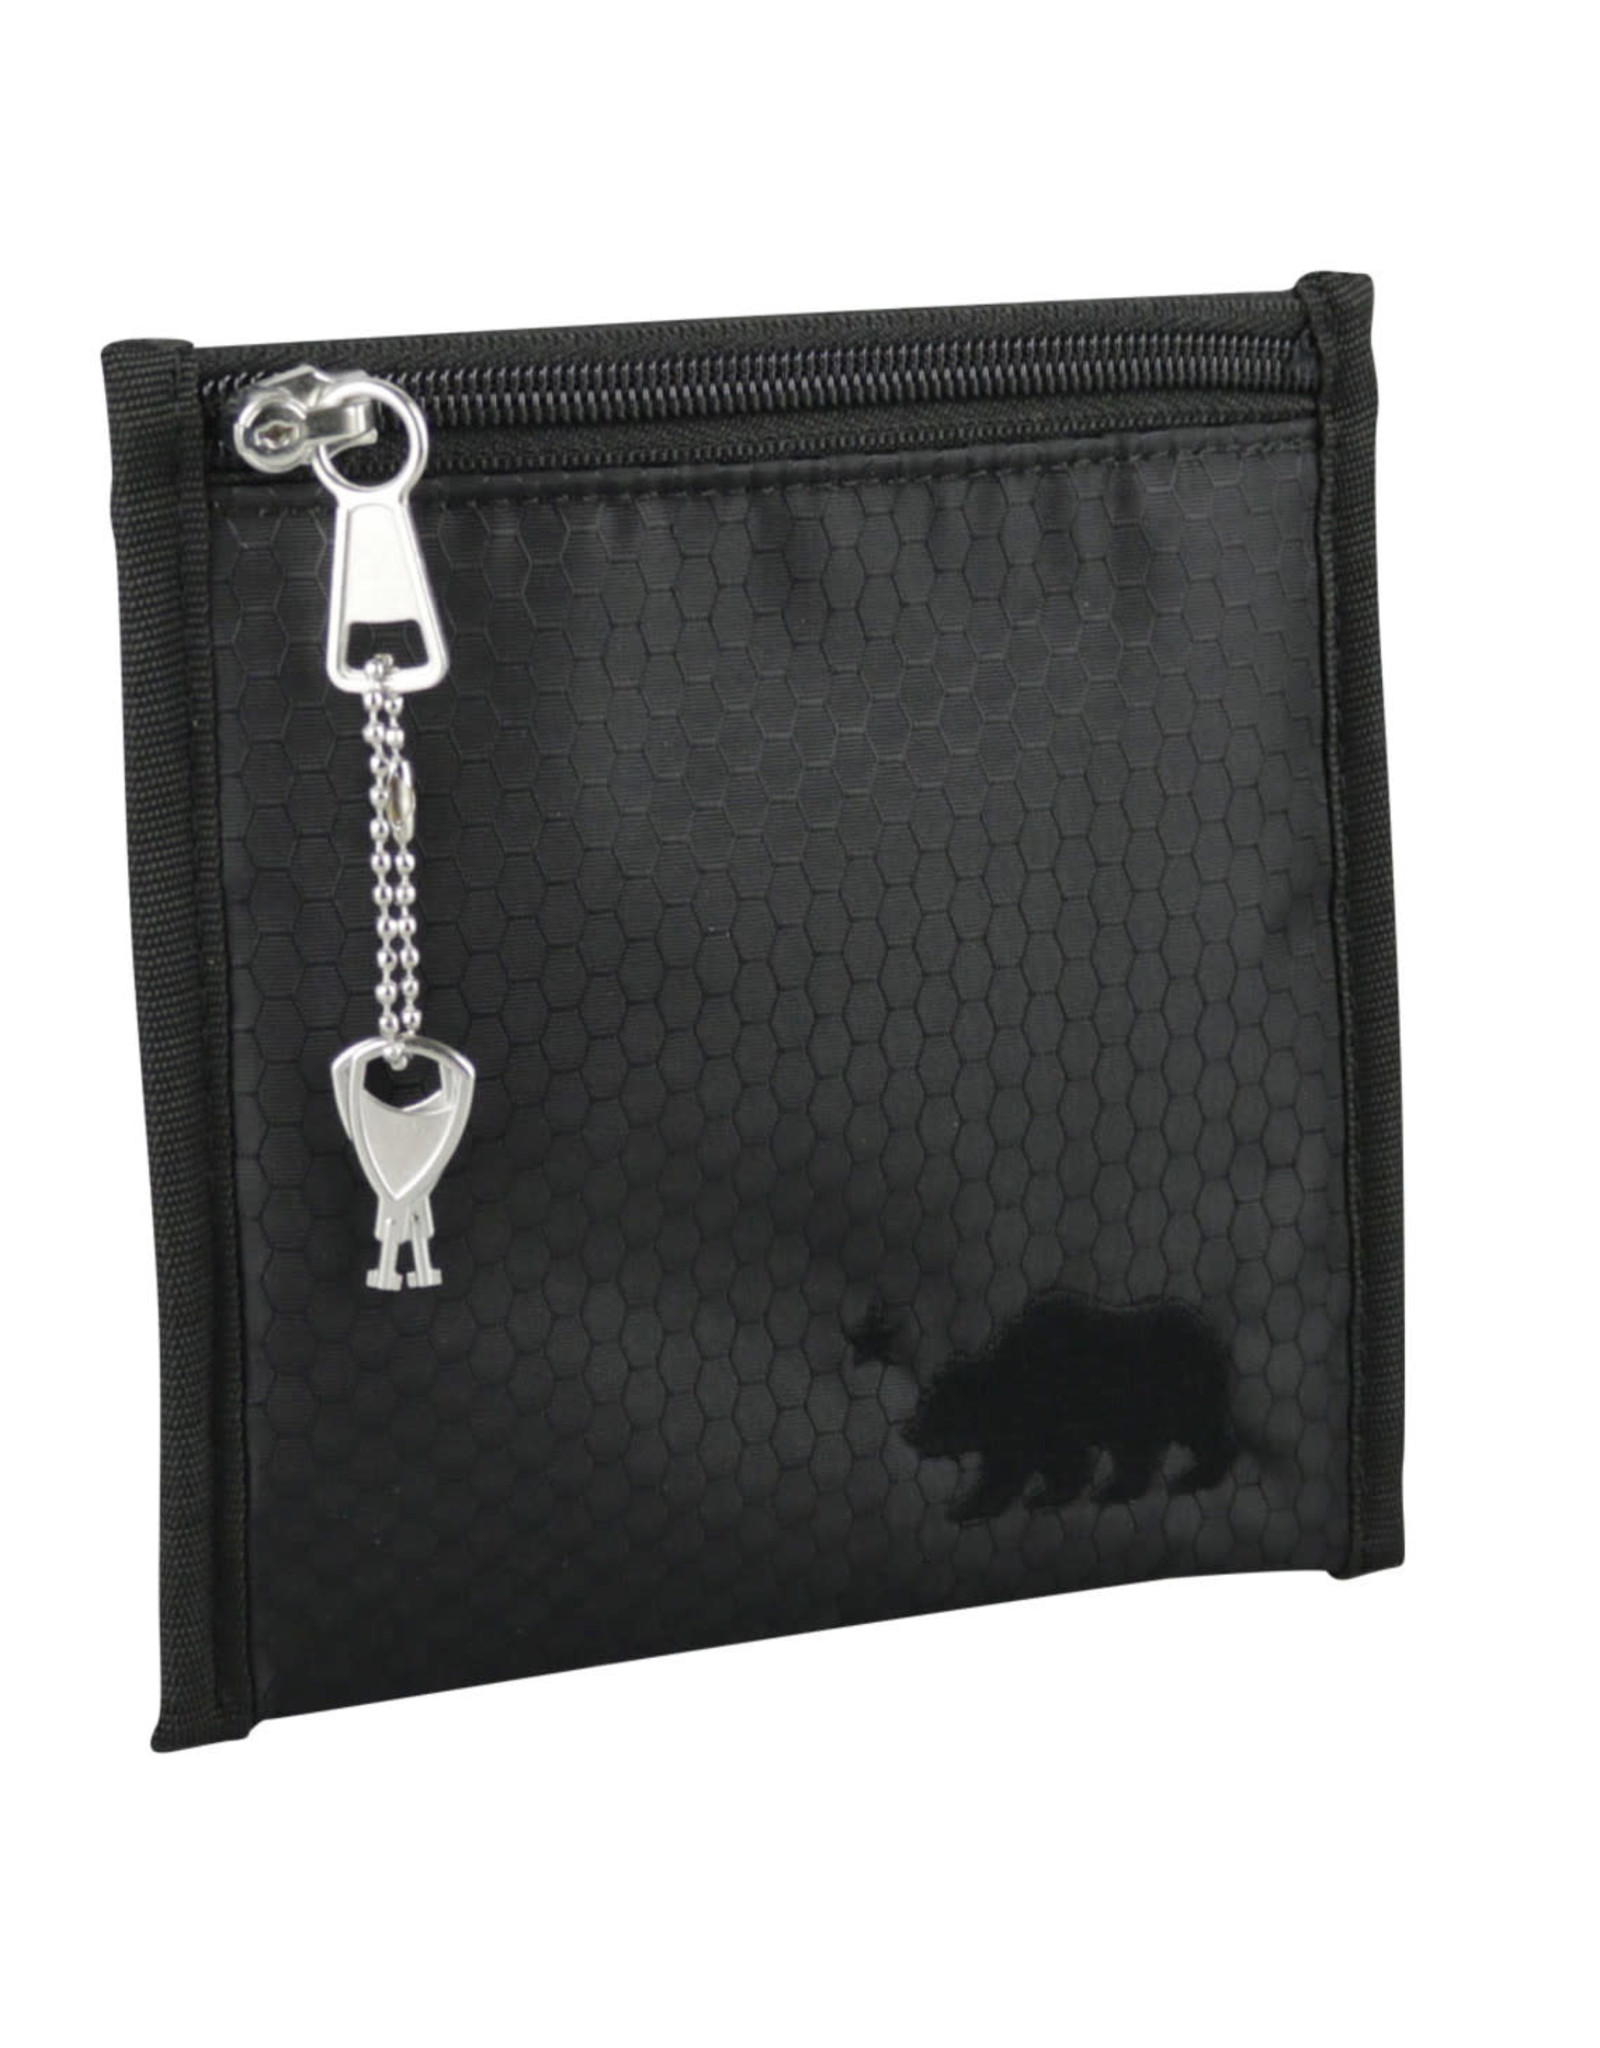 "Cali Crusher Cali Crusher Pouch - 6""x6"" / Black"